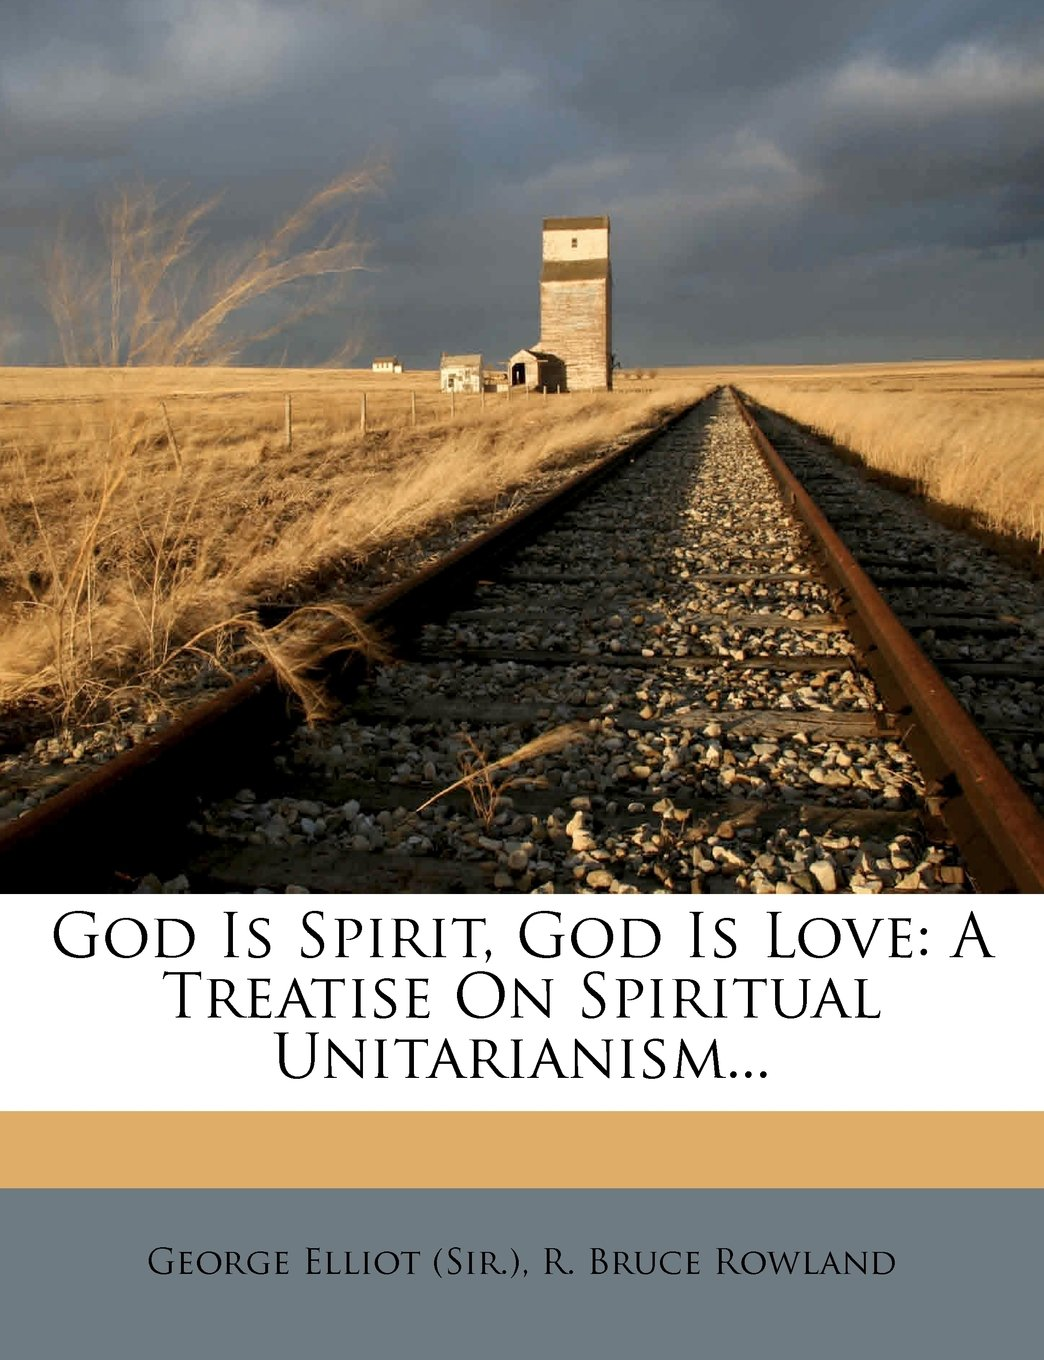 God Is Spirit, God Is Love: A Treatise on Spiritual Unitarianism... PDF